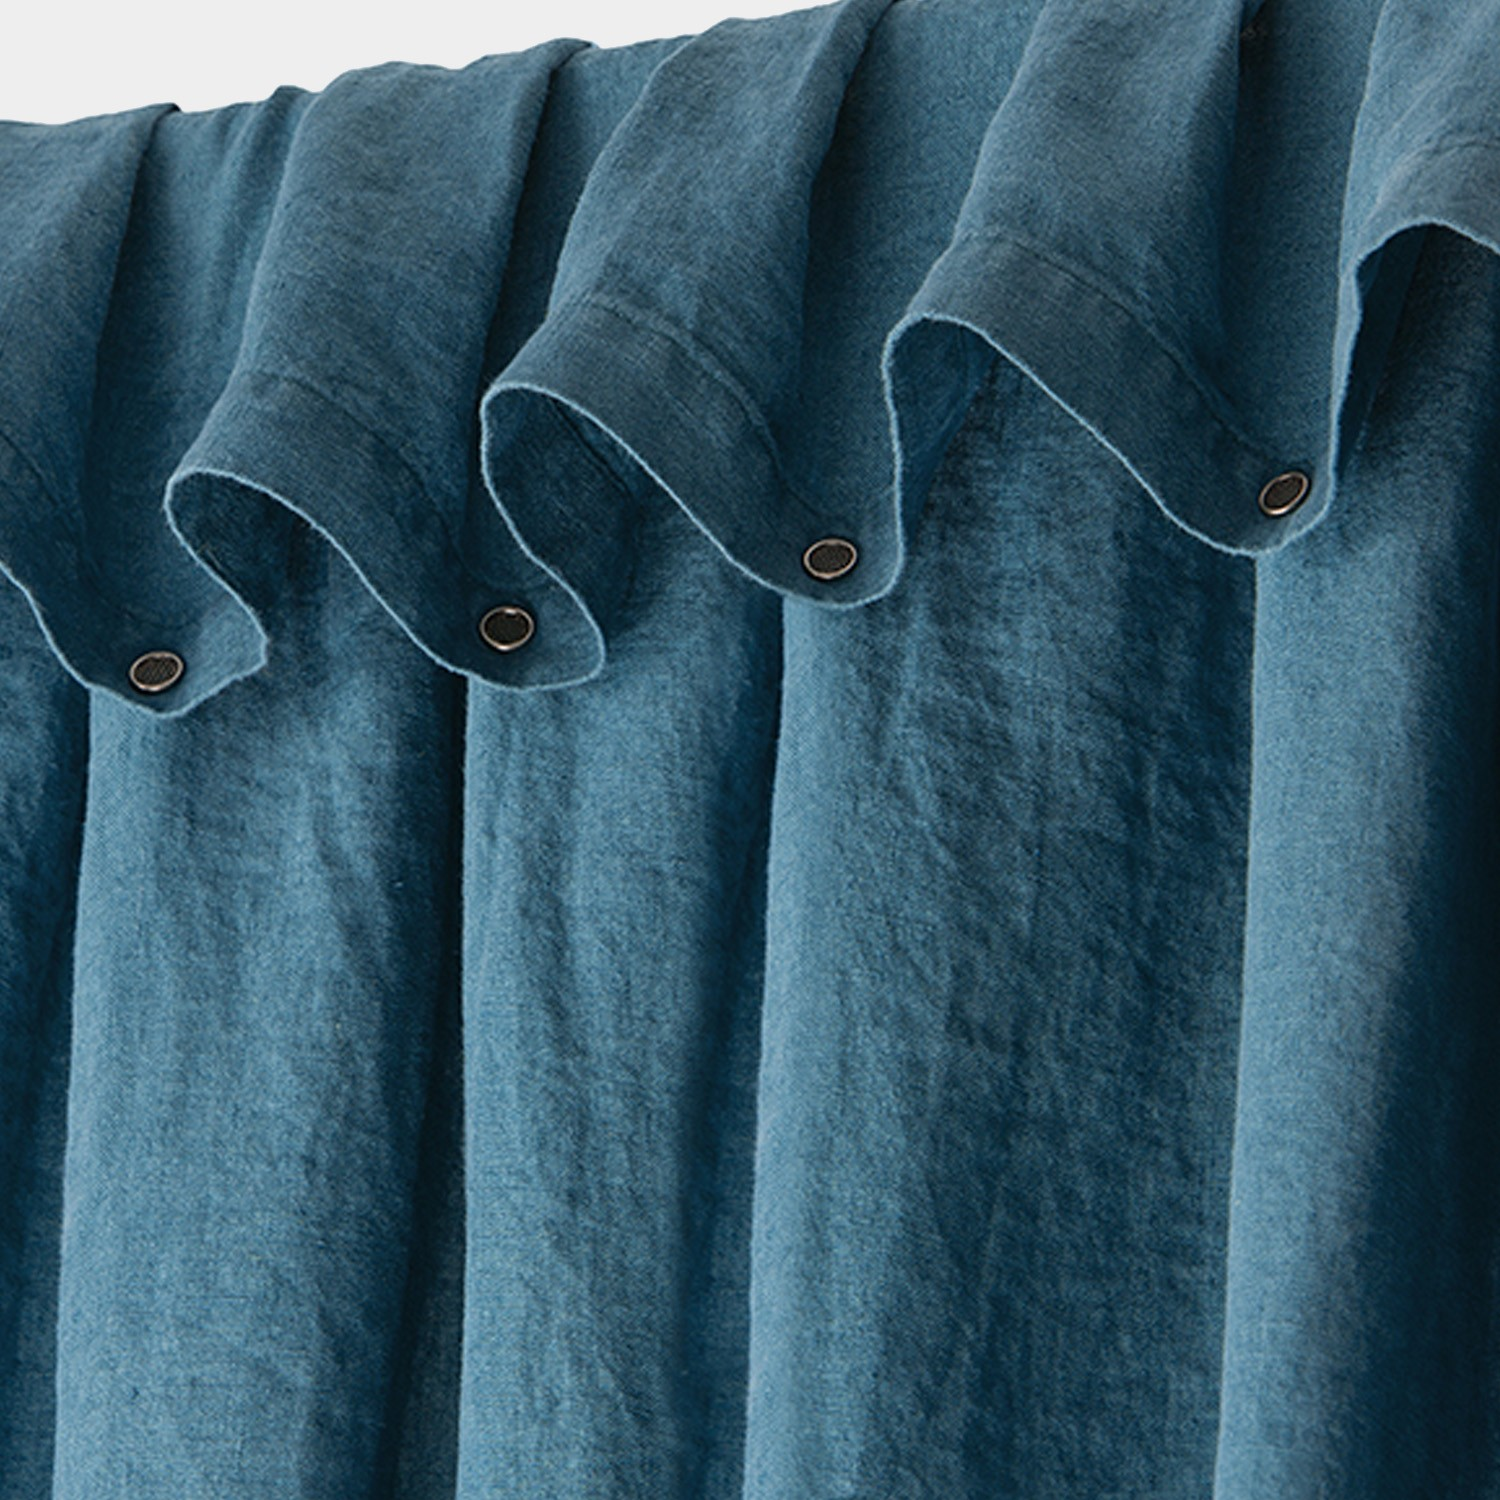 Washed Linen Curtain Teal Blue